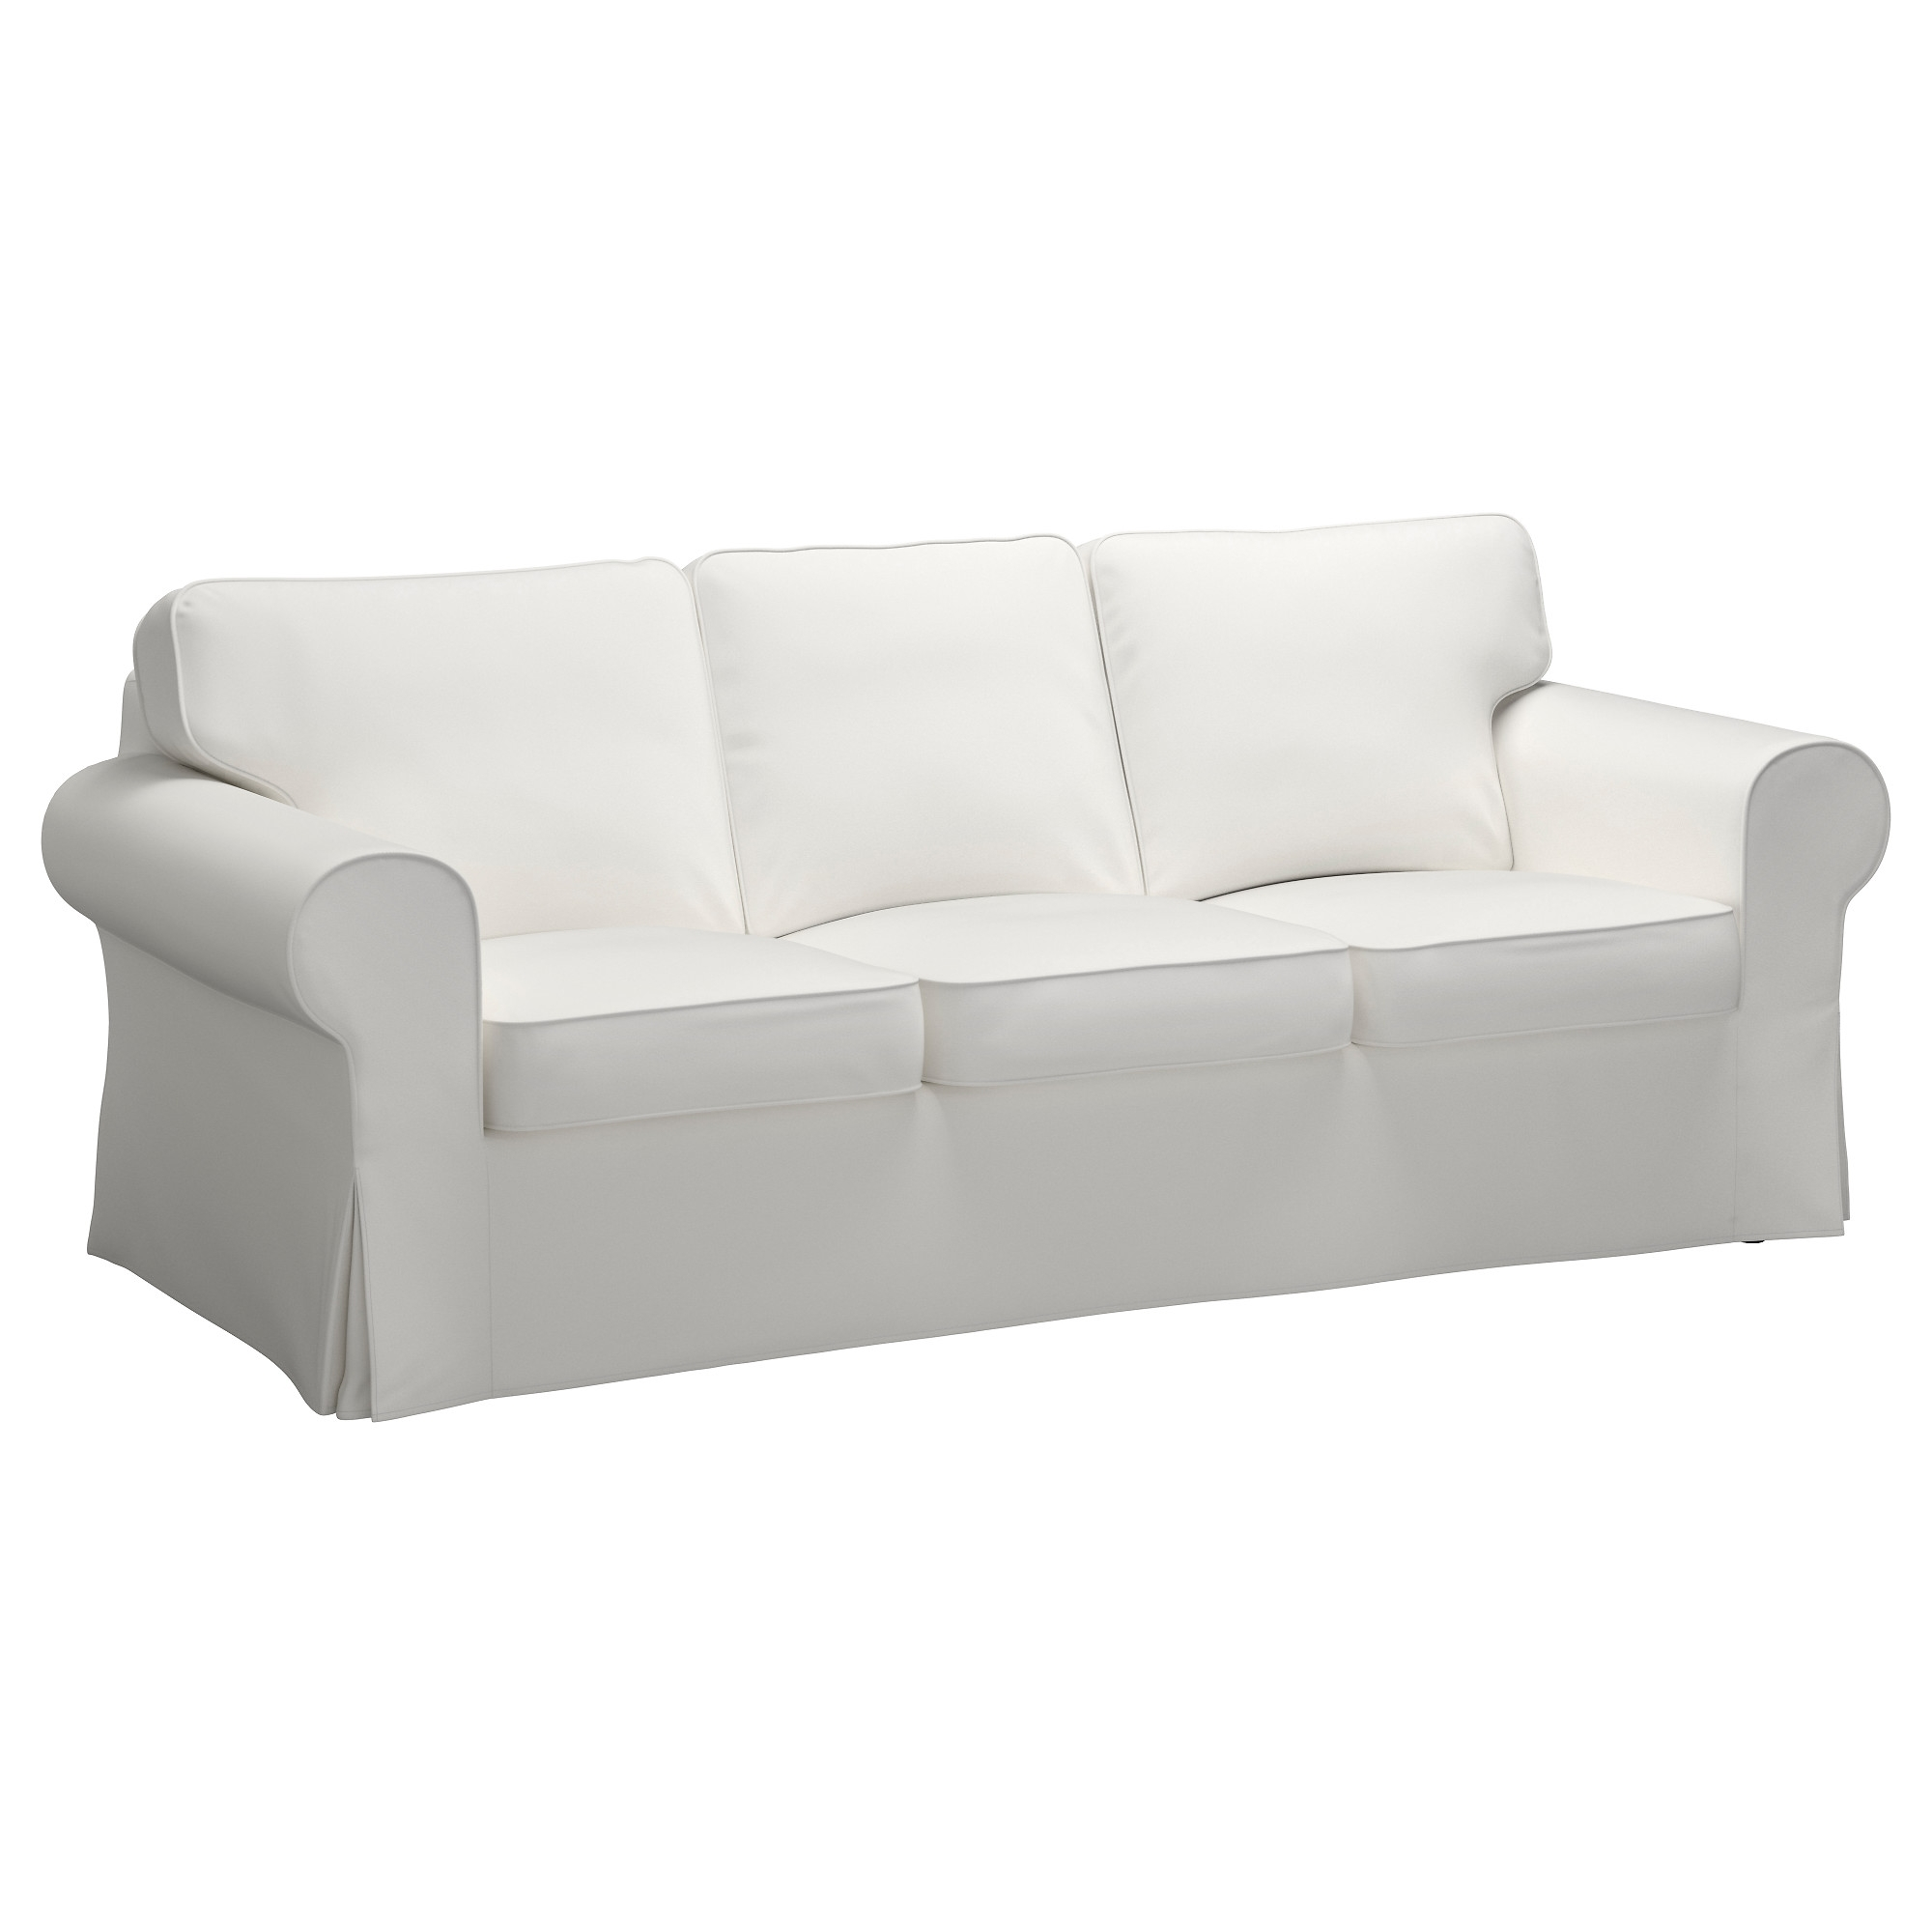 Best And Newest White Sofa Chairs Throughout Ektorp Sofa – Vittaryd White – Ikea (View 3 of 20)